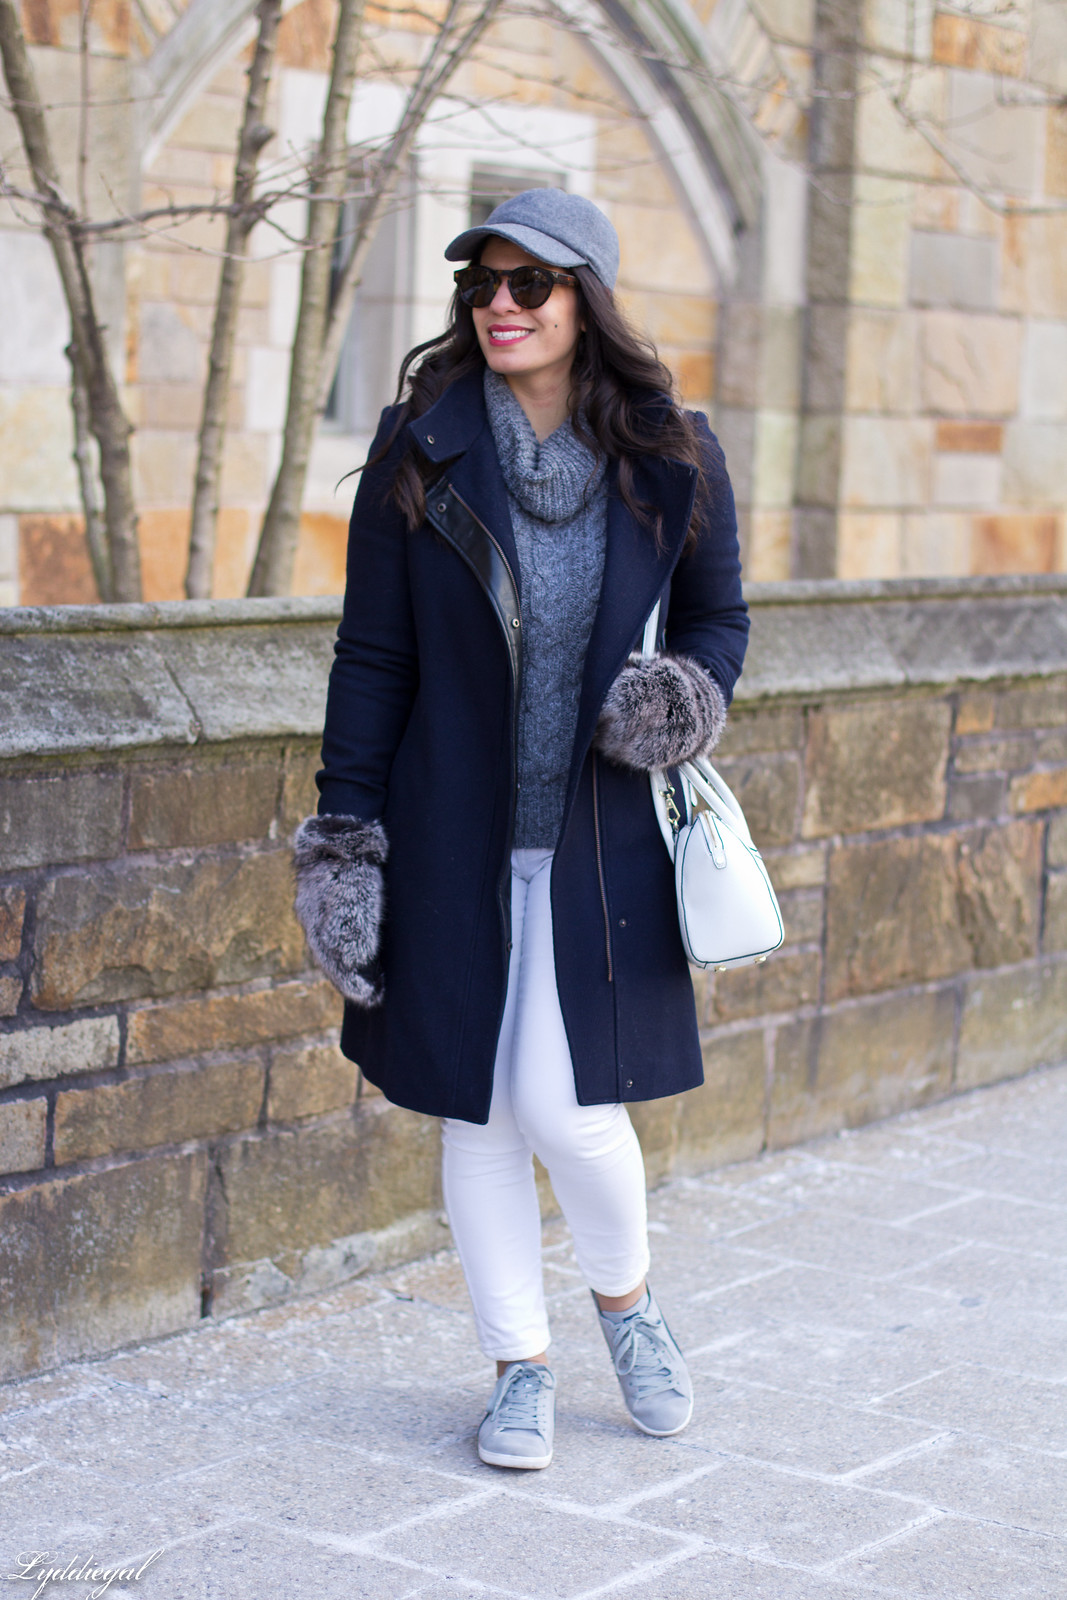 grey turtleneck, white jeans, wool baseball cap, furry mittens-2.jpg